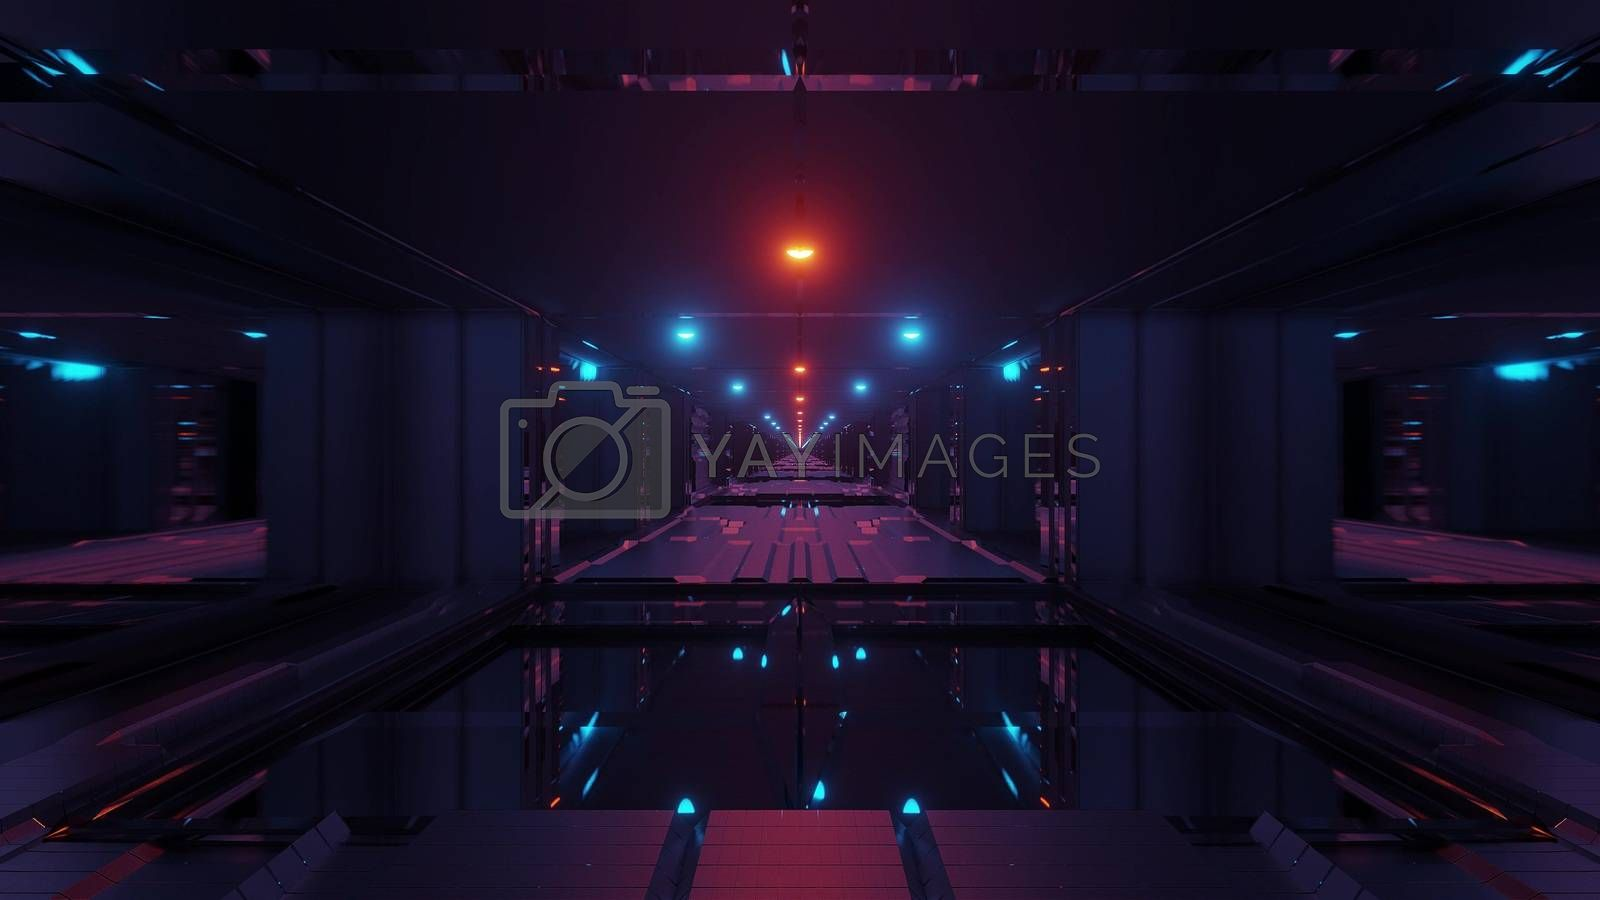 futuristic scifi space tunnel corridor with glowing lights and glass windows and botom 3d illustration background wallpaper graphic artwork, endless sci-fi tunnel 3d renderig with reflective contur